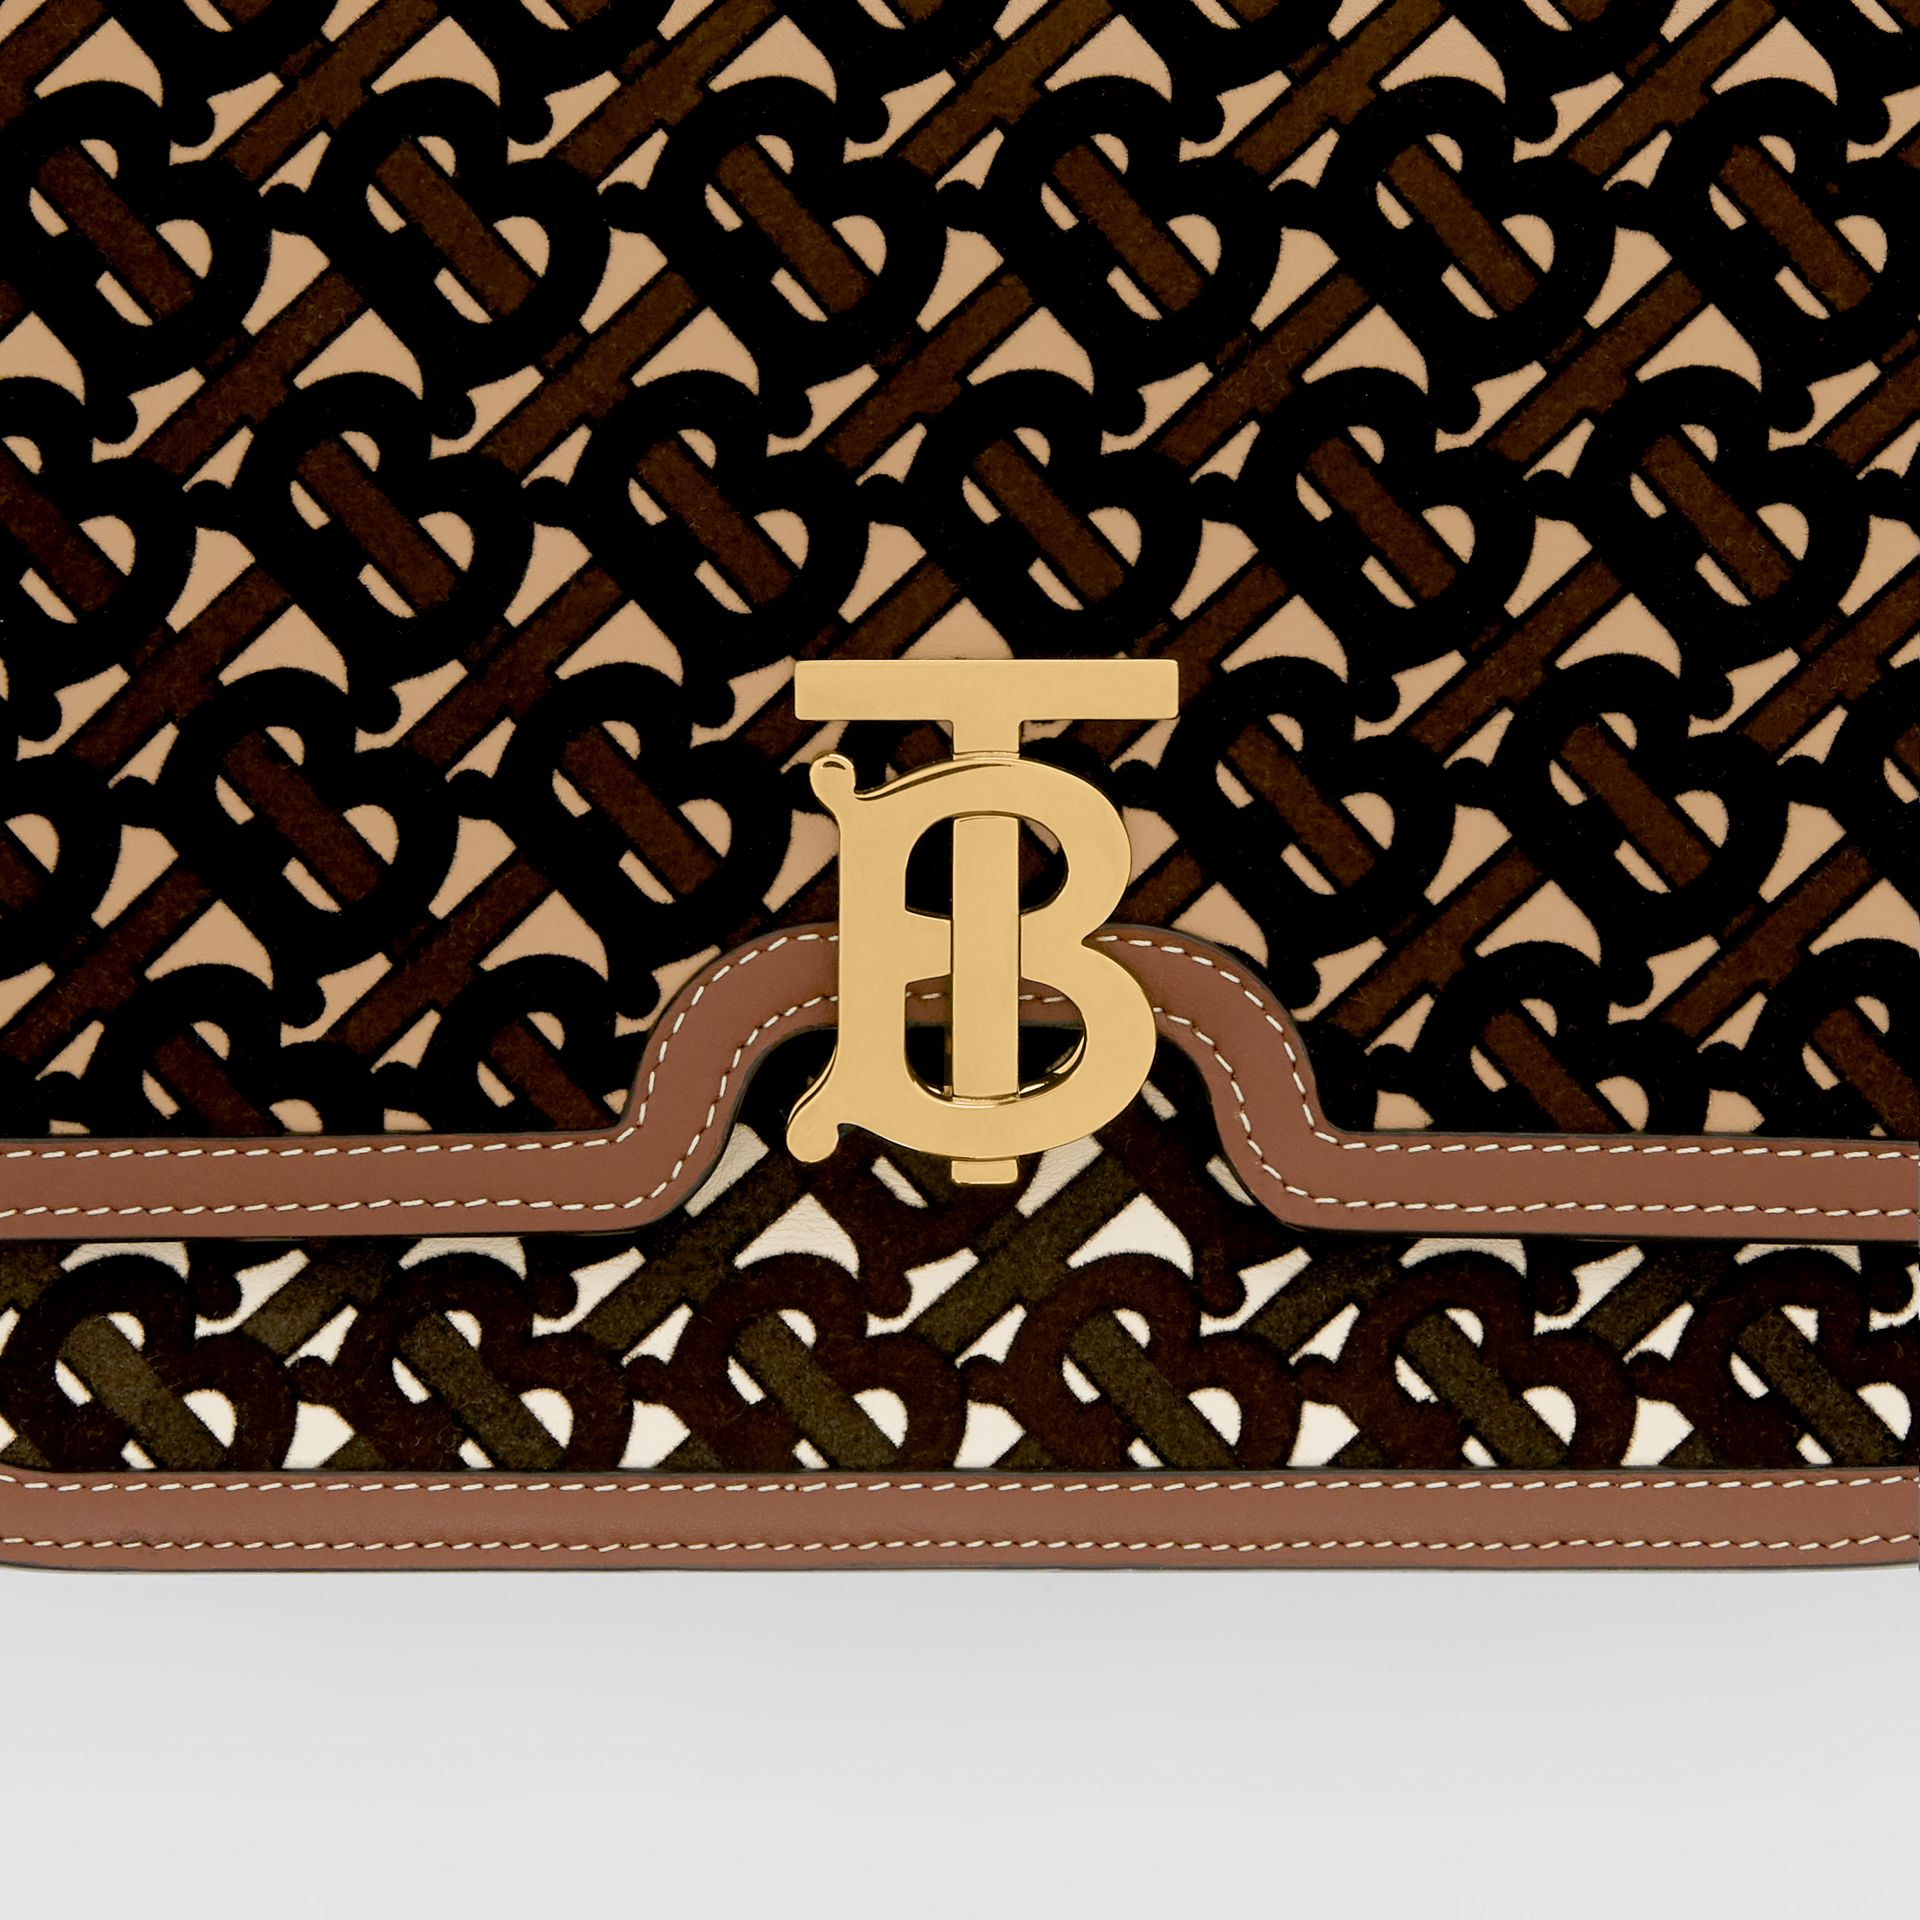 Medium Monogram Flocked Leather TB Bag in Dark Brown - Women | Burberry Canada - gallery image 1